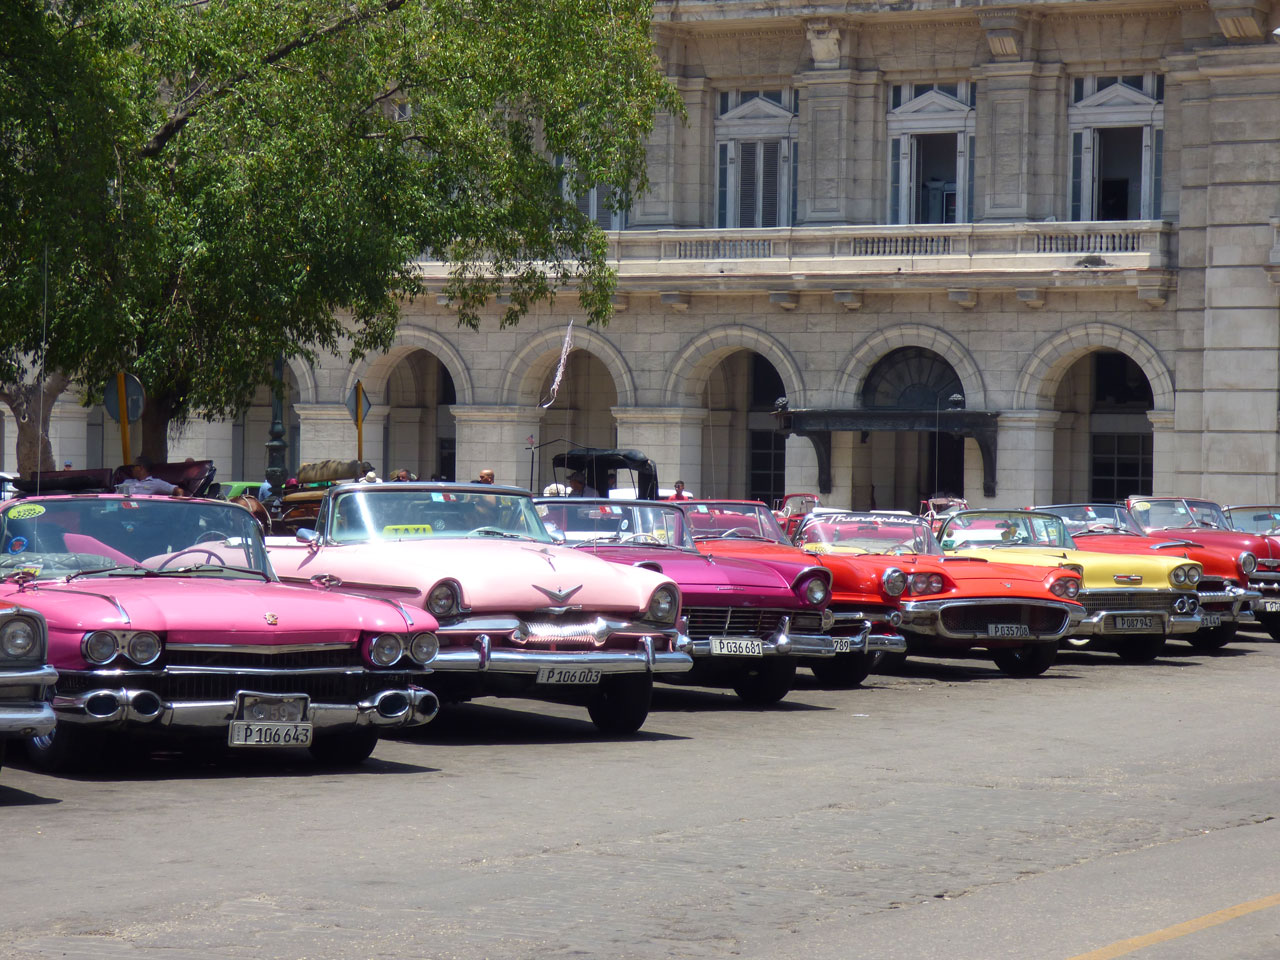 Classic cars lined up on the Prado, Havana